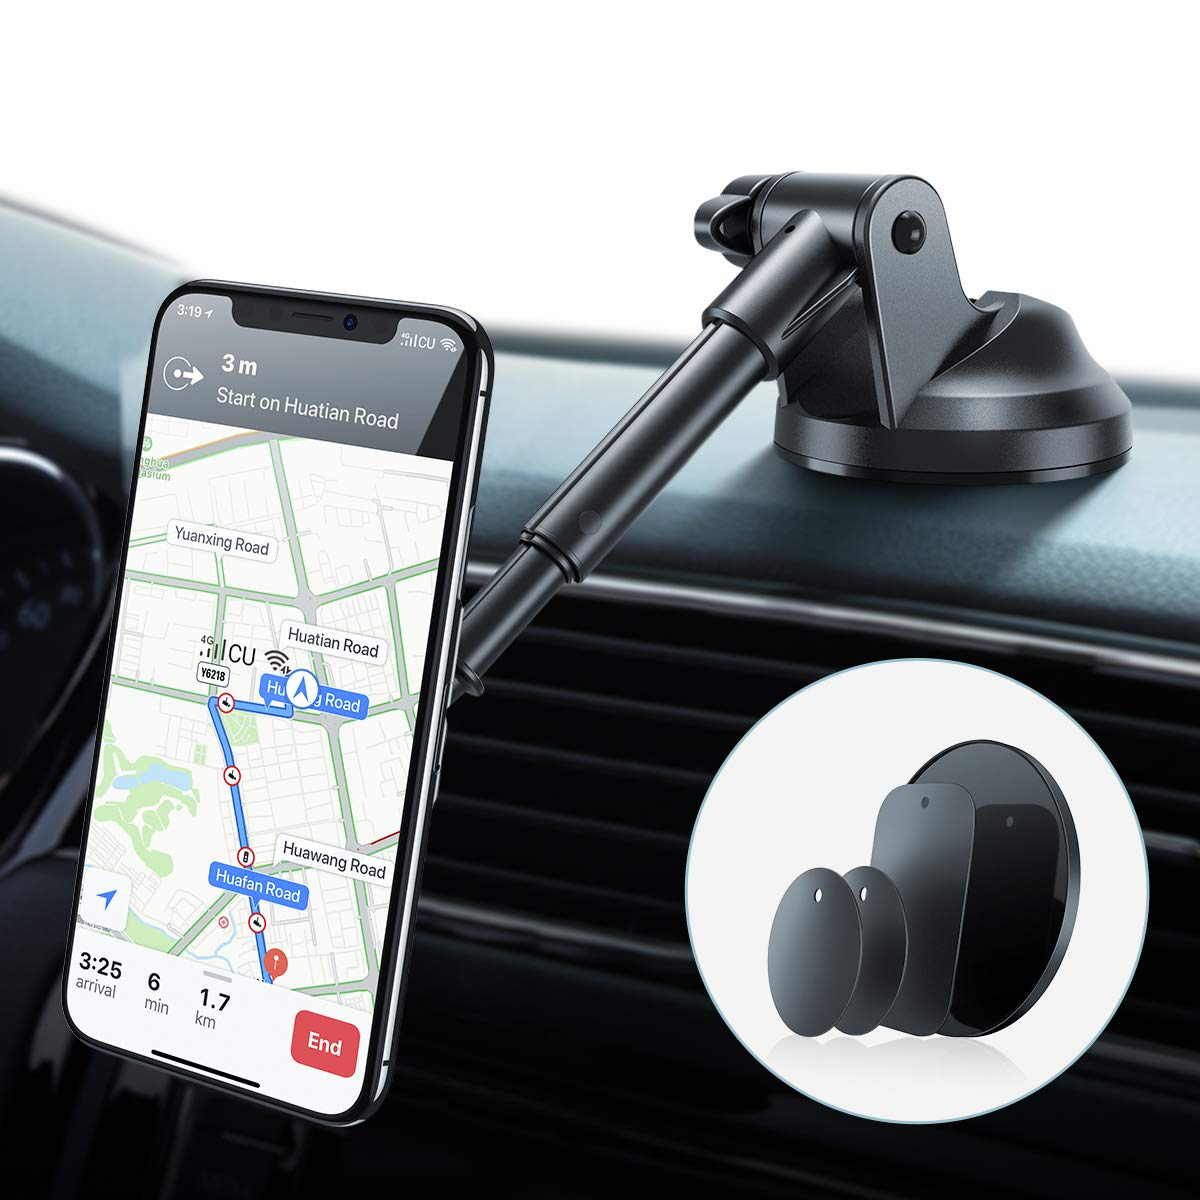 AINOPE Magnetic Phone Car Mount, 6 Strong Magnets Phone Holder for Car Dashboard and Windshield, 360° Rotation & Metal Telescopic Arm, Hands-Free Car Phone Holder for with 3''-7'' Phone by AINOPE